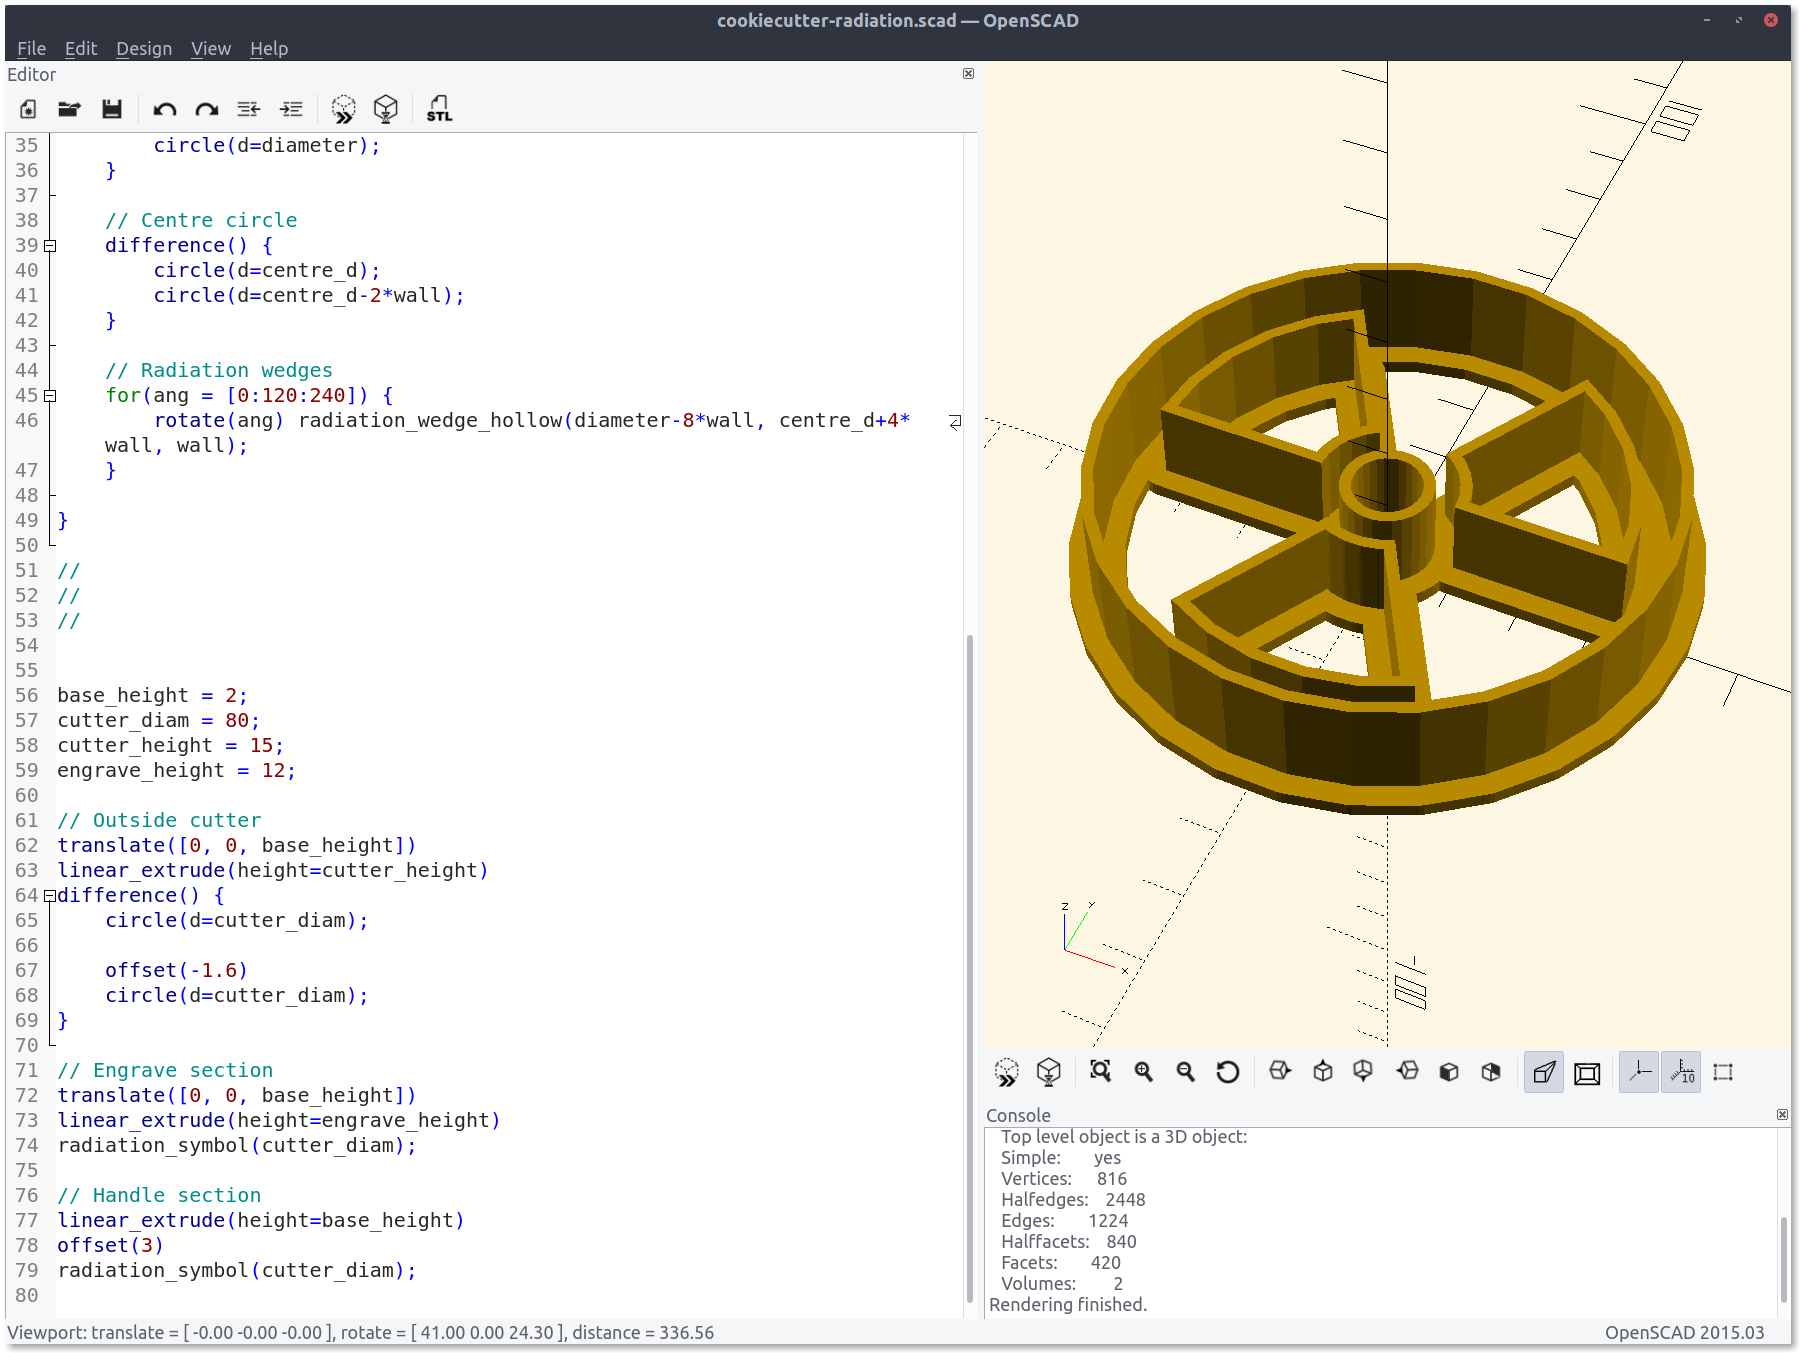 OpenSCAD interface, showing a render of the radiation symbol cookie cutter and part of the code that generates it